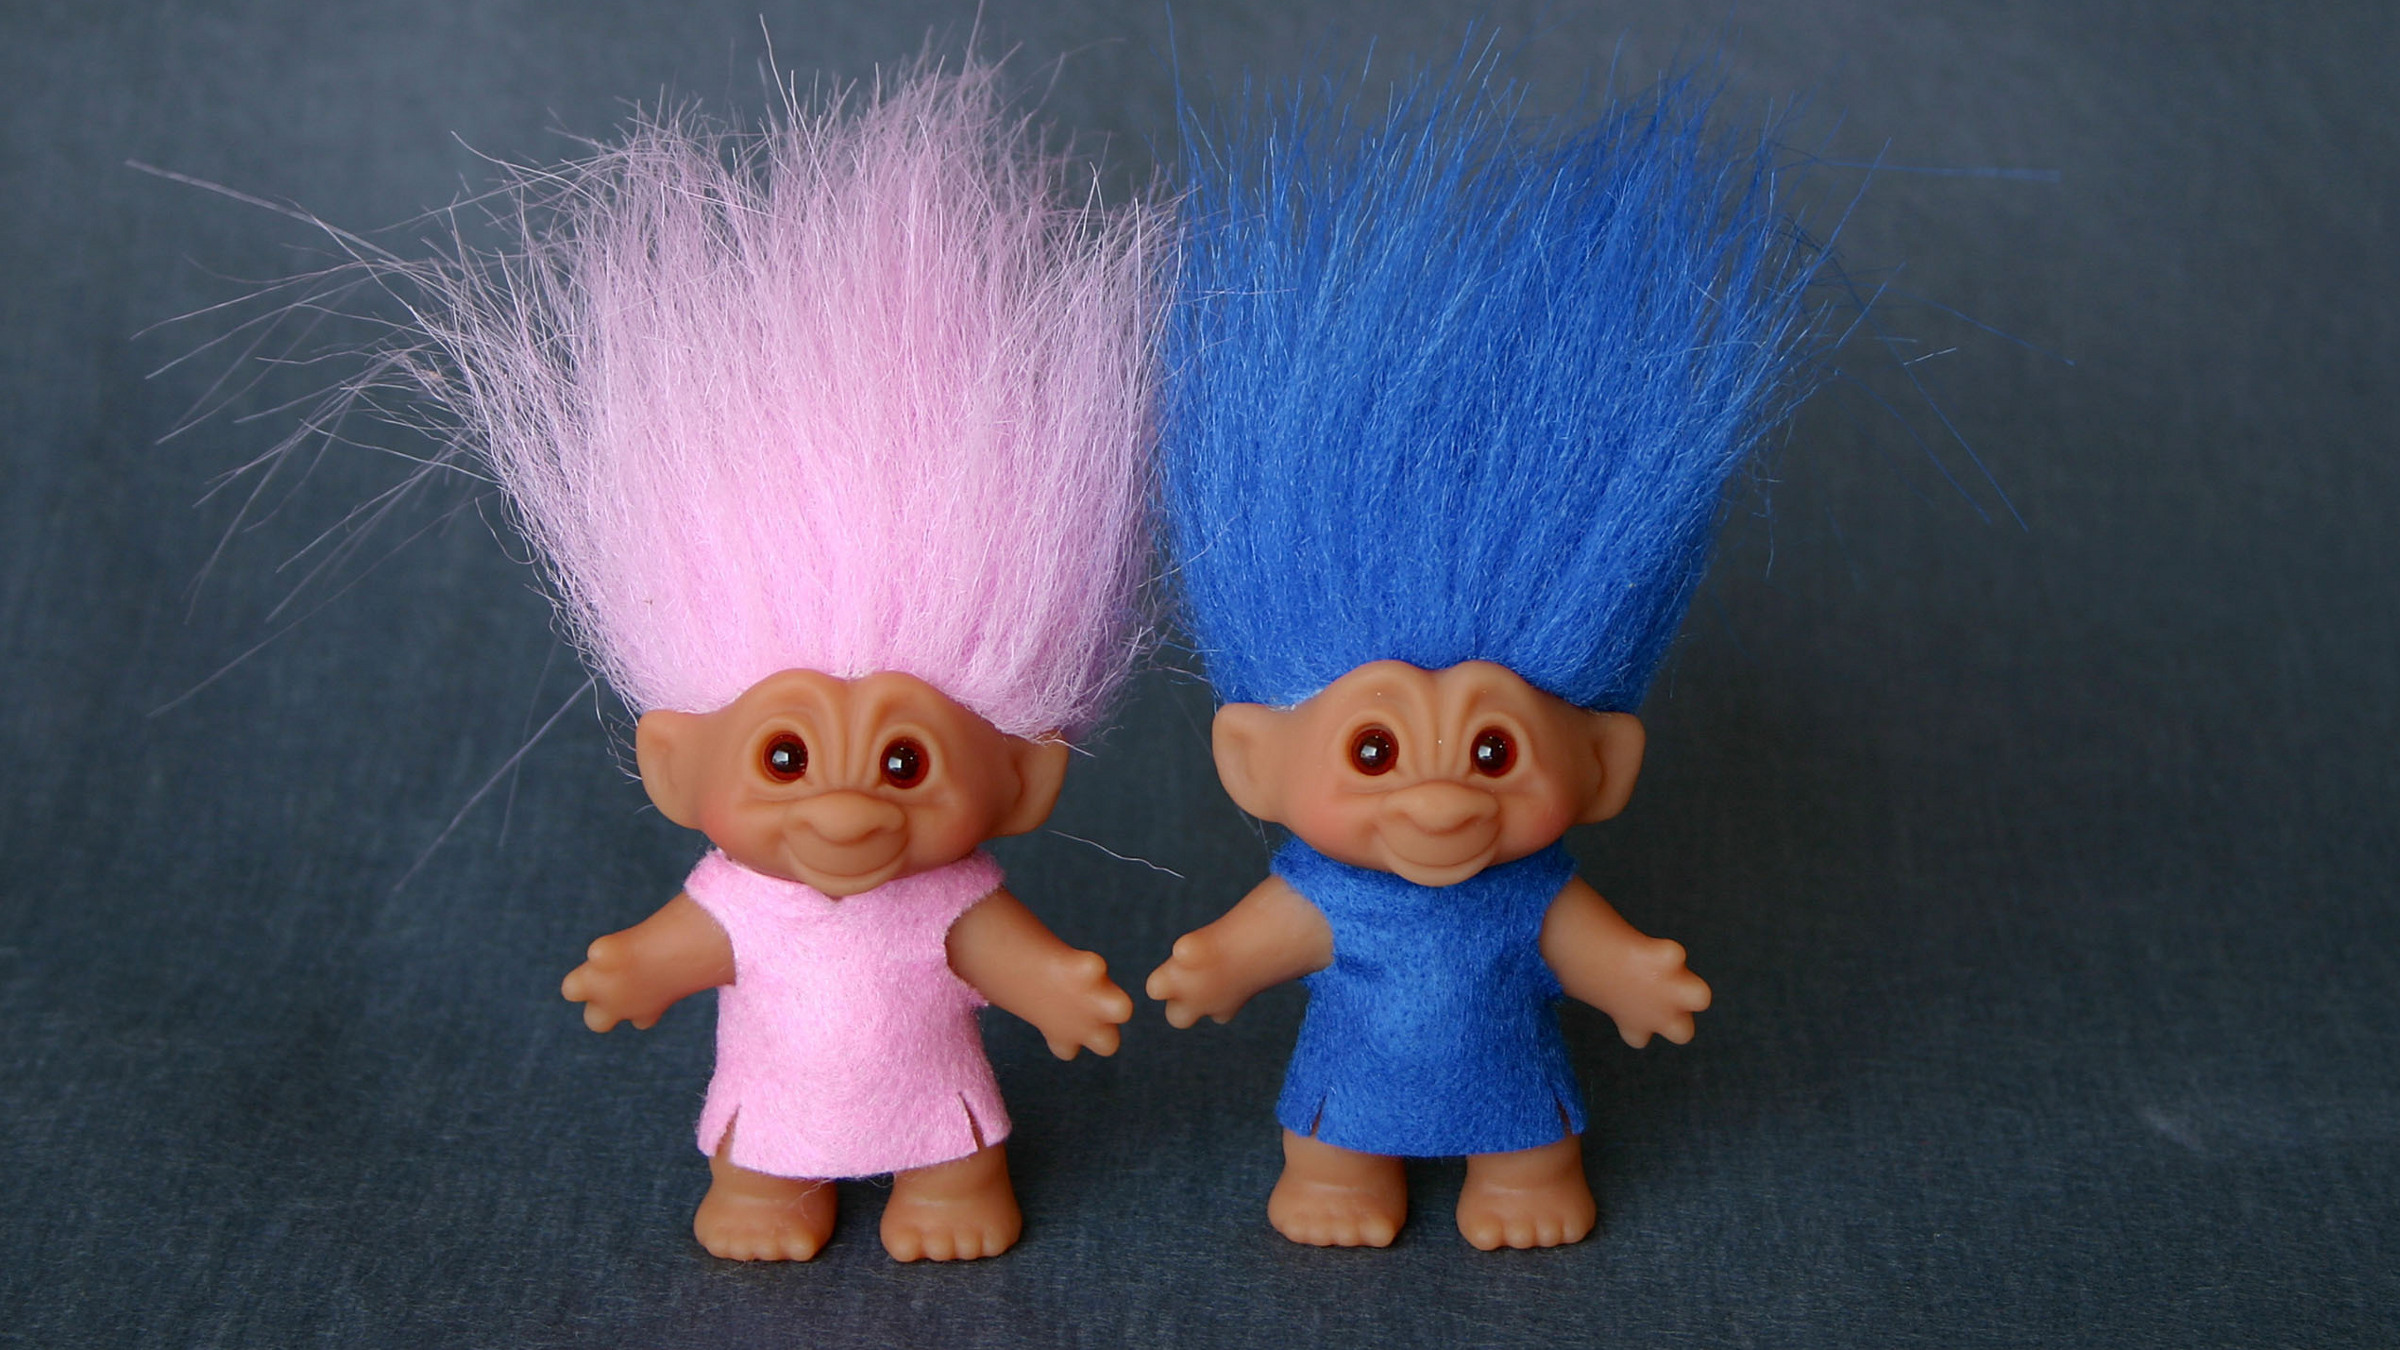 DreamWorks Animation brings Good Luck Troll Dolls out of hiding.